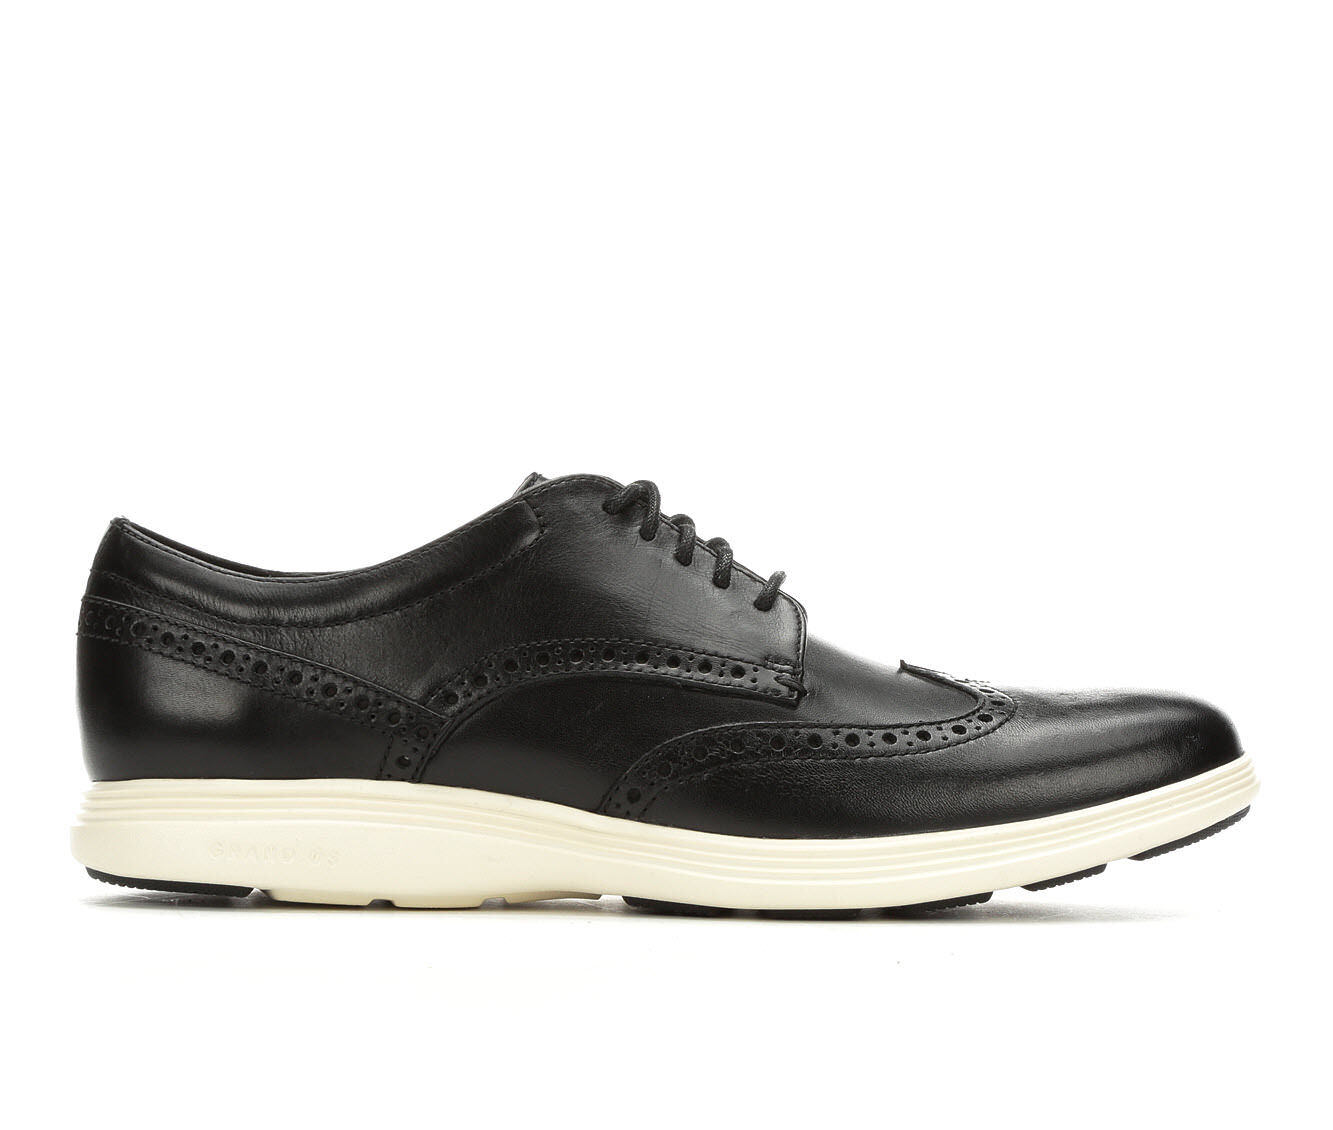 Men's Cole Haan Grand Tour Wing Tip Oxford Dress Shoes Black